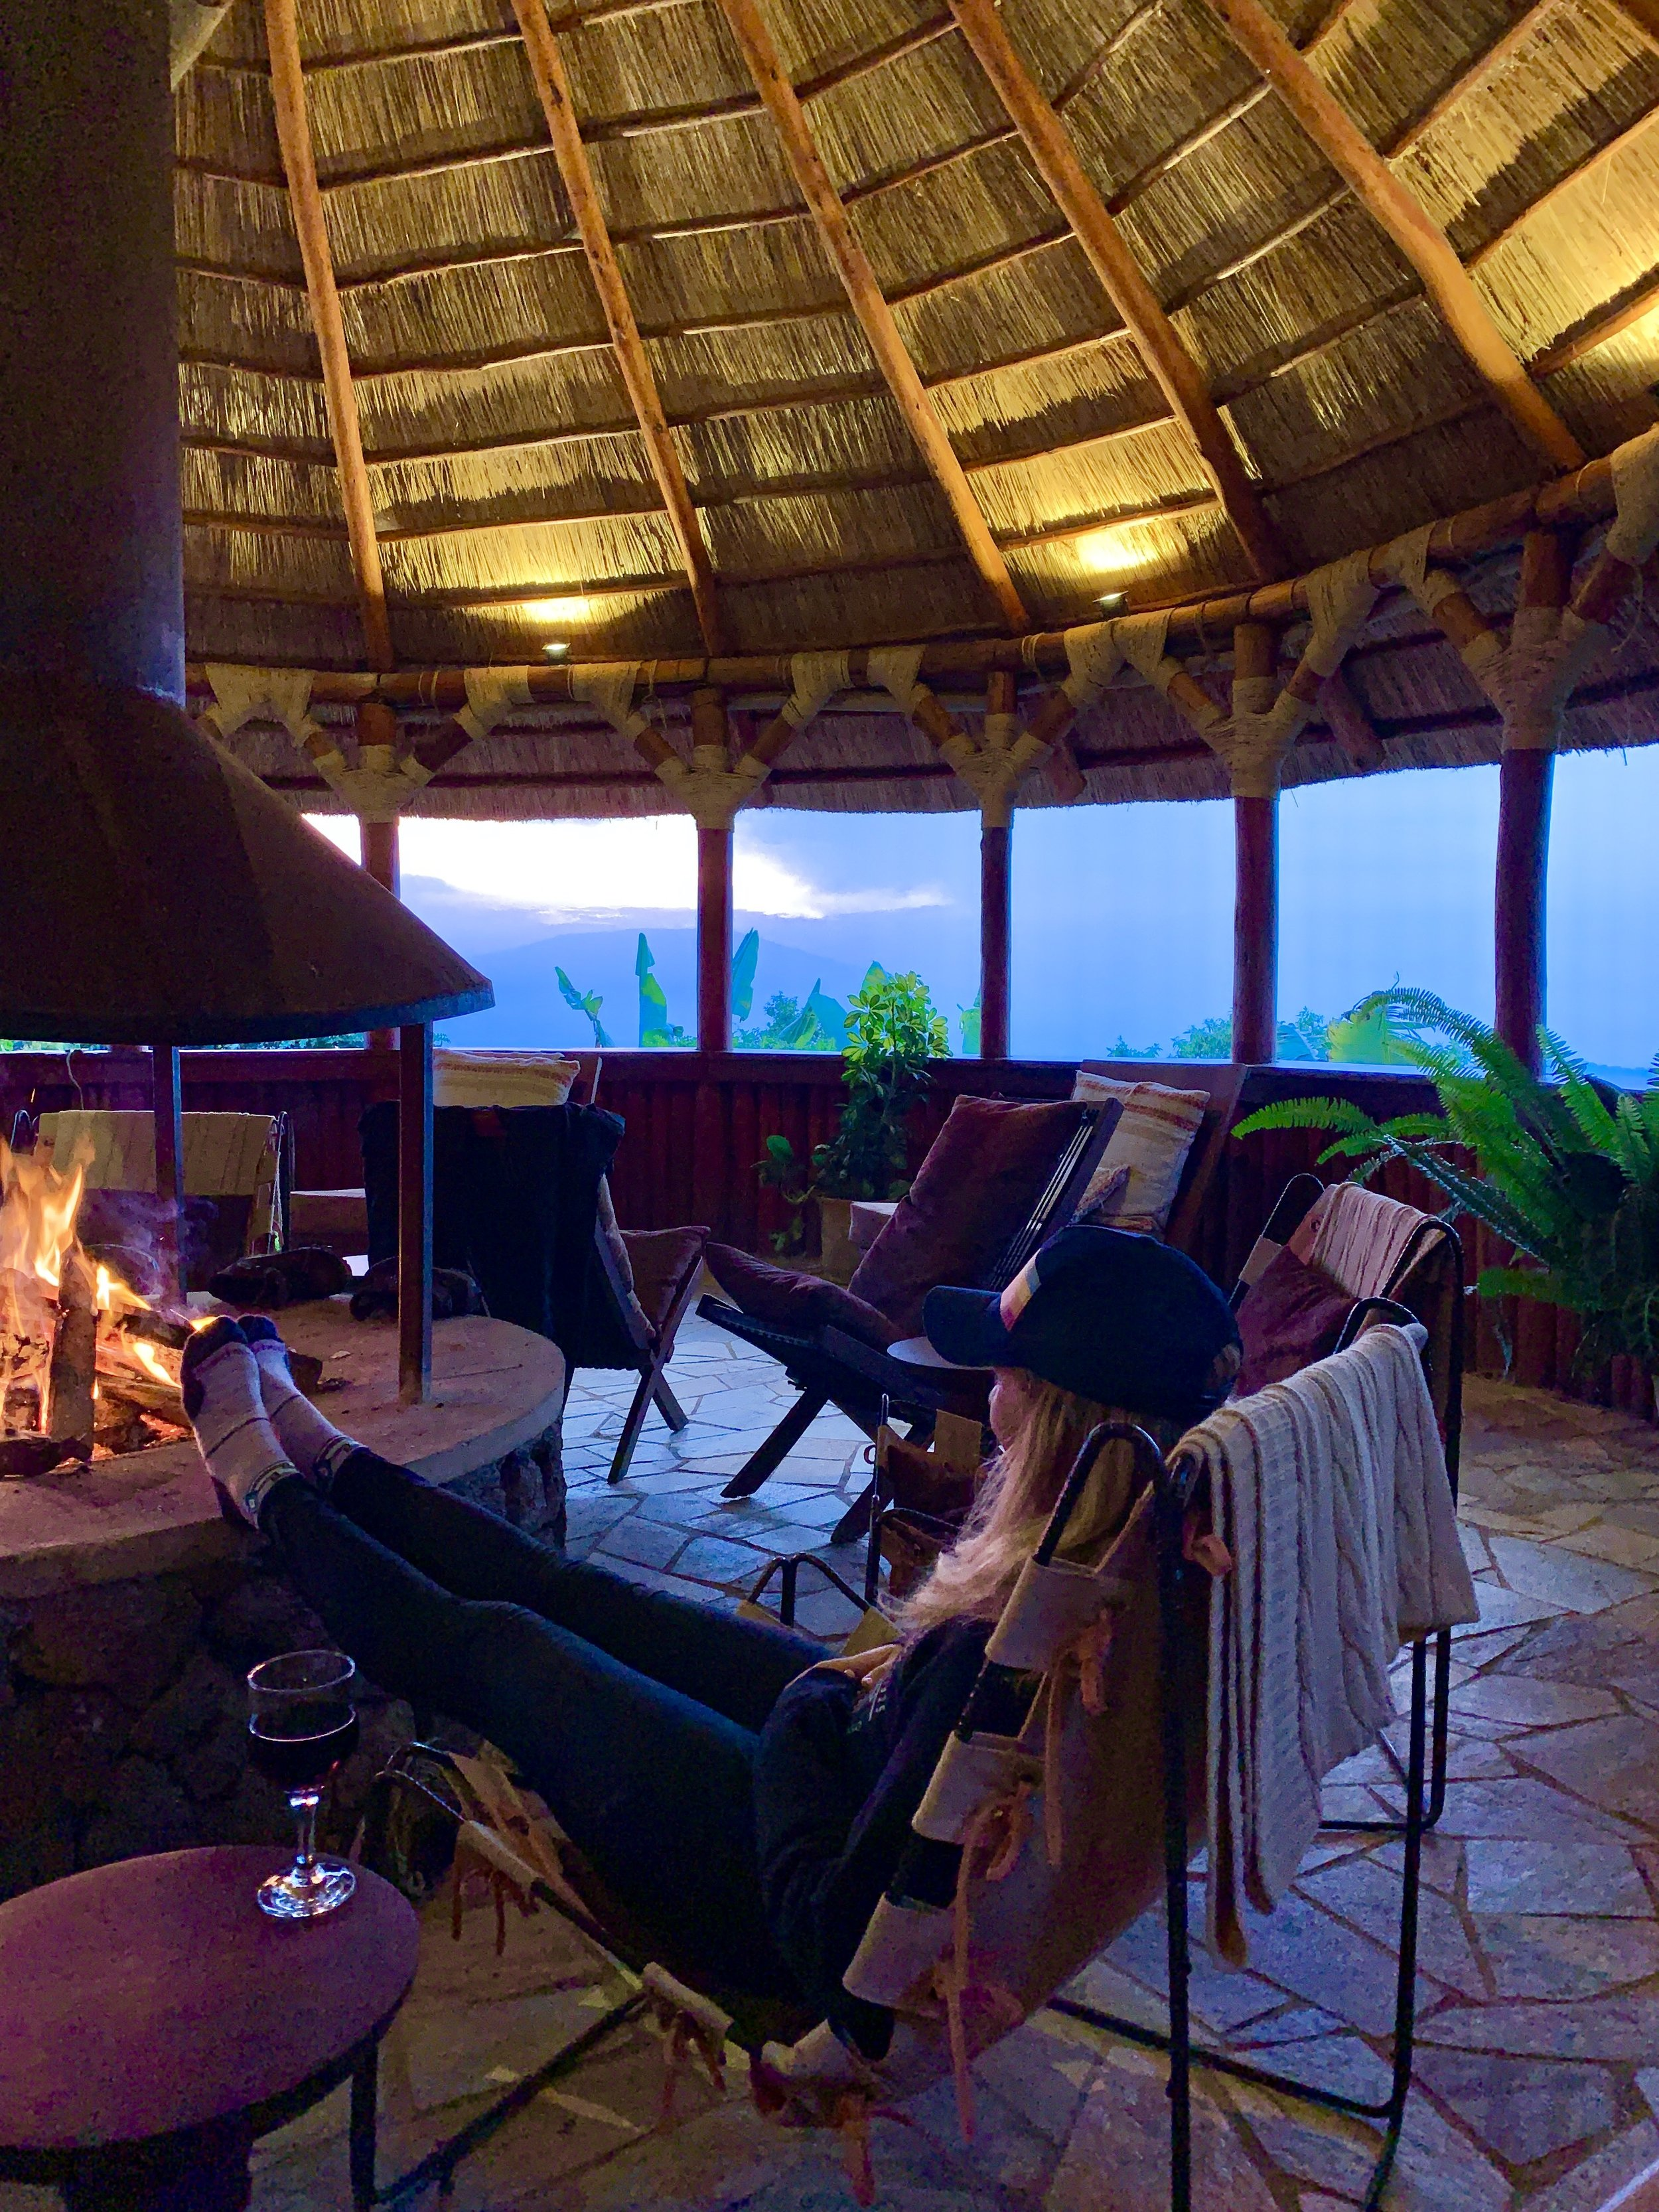 Enjoying the firepit and views from the Kibumba common area